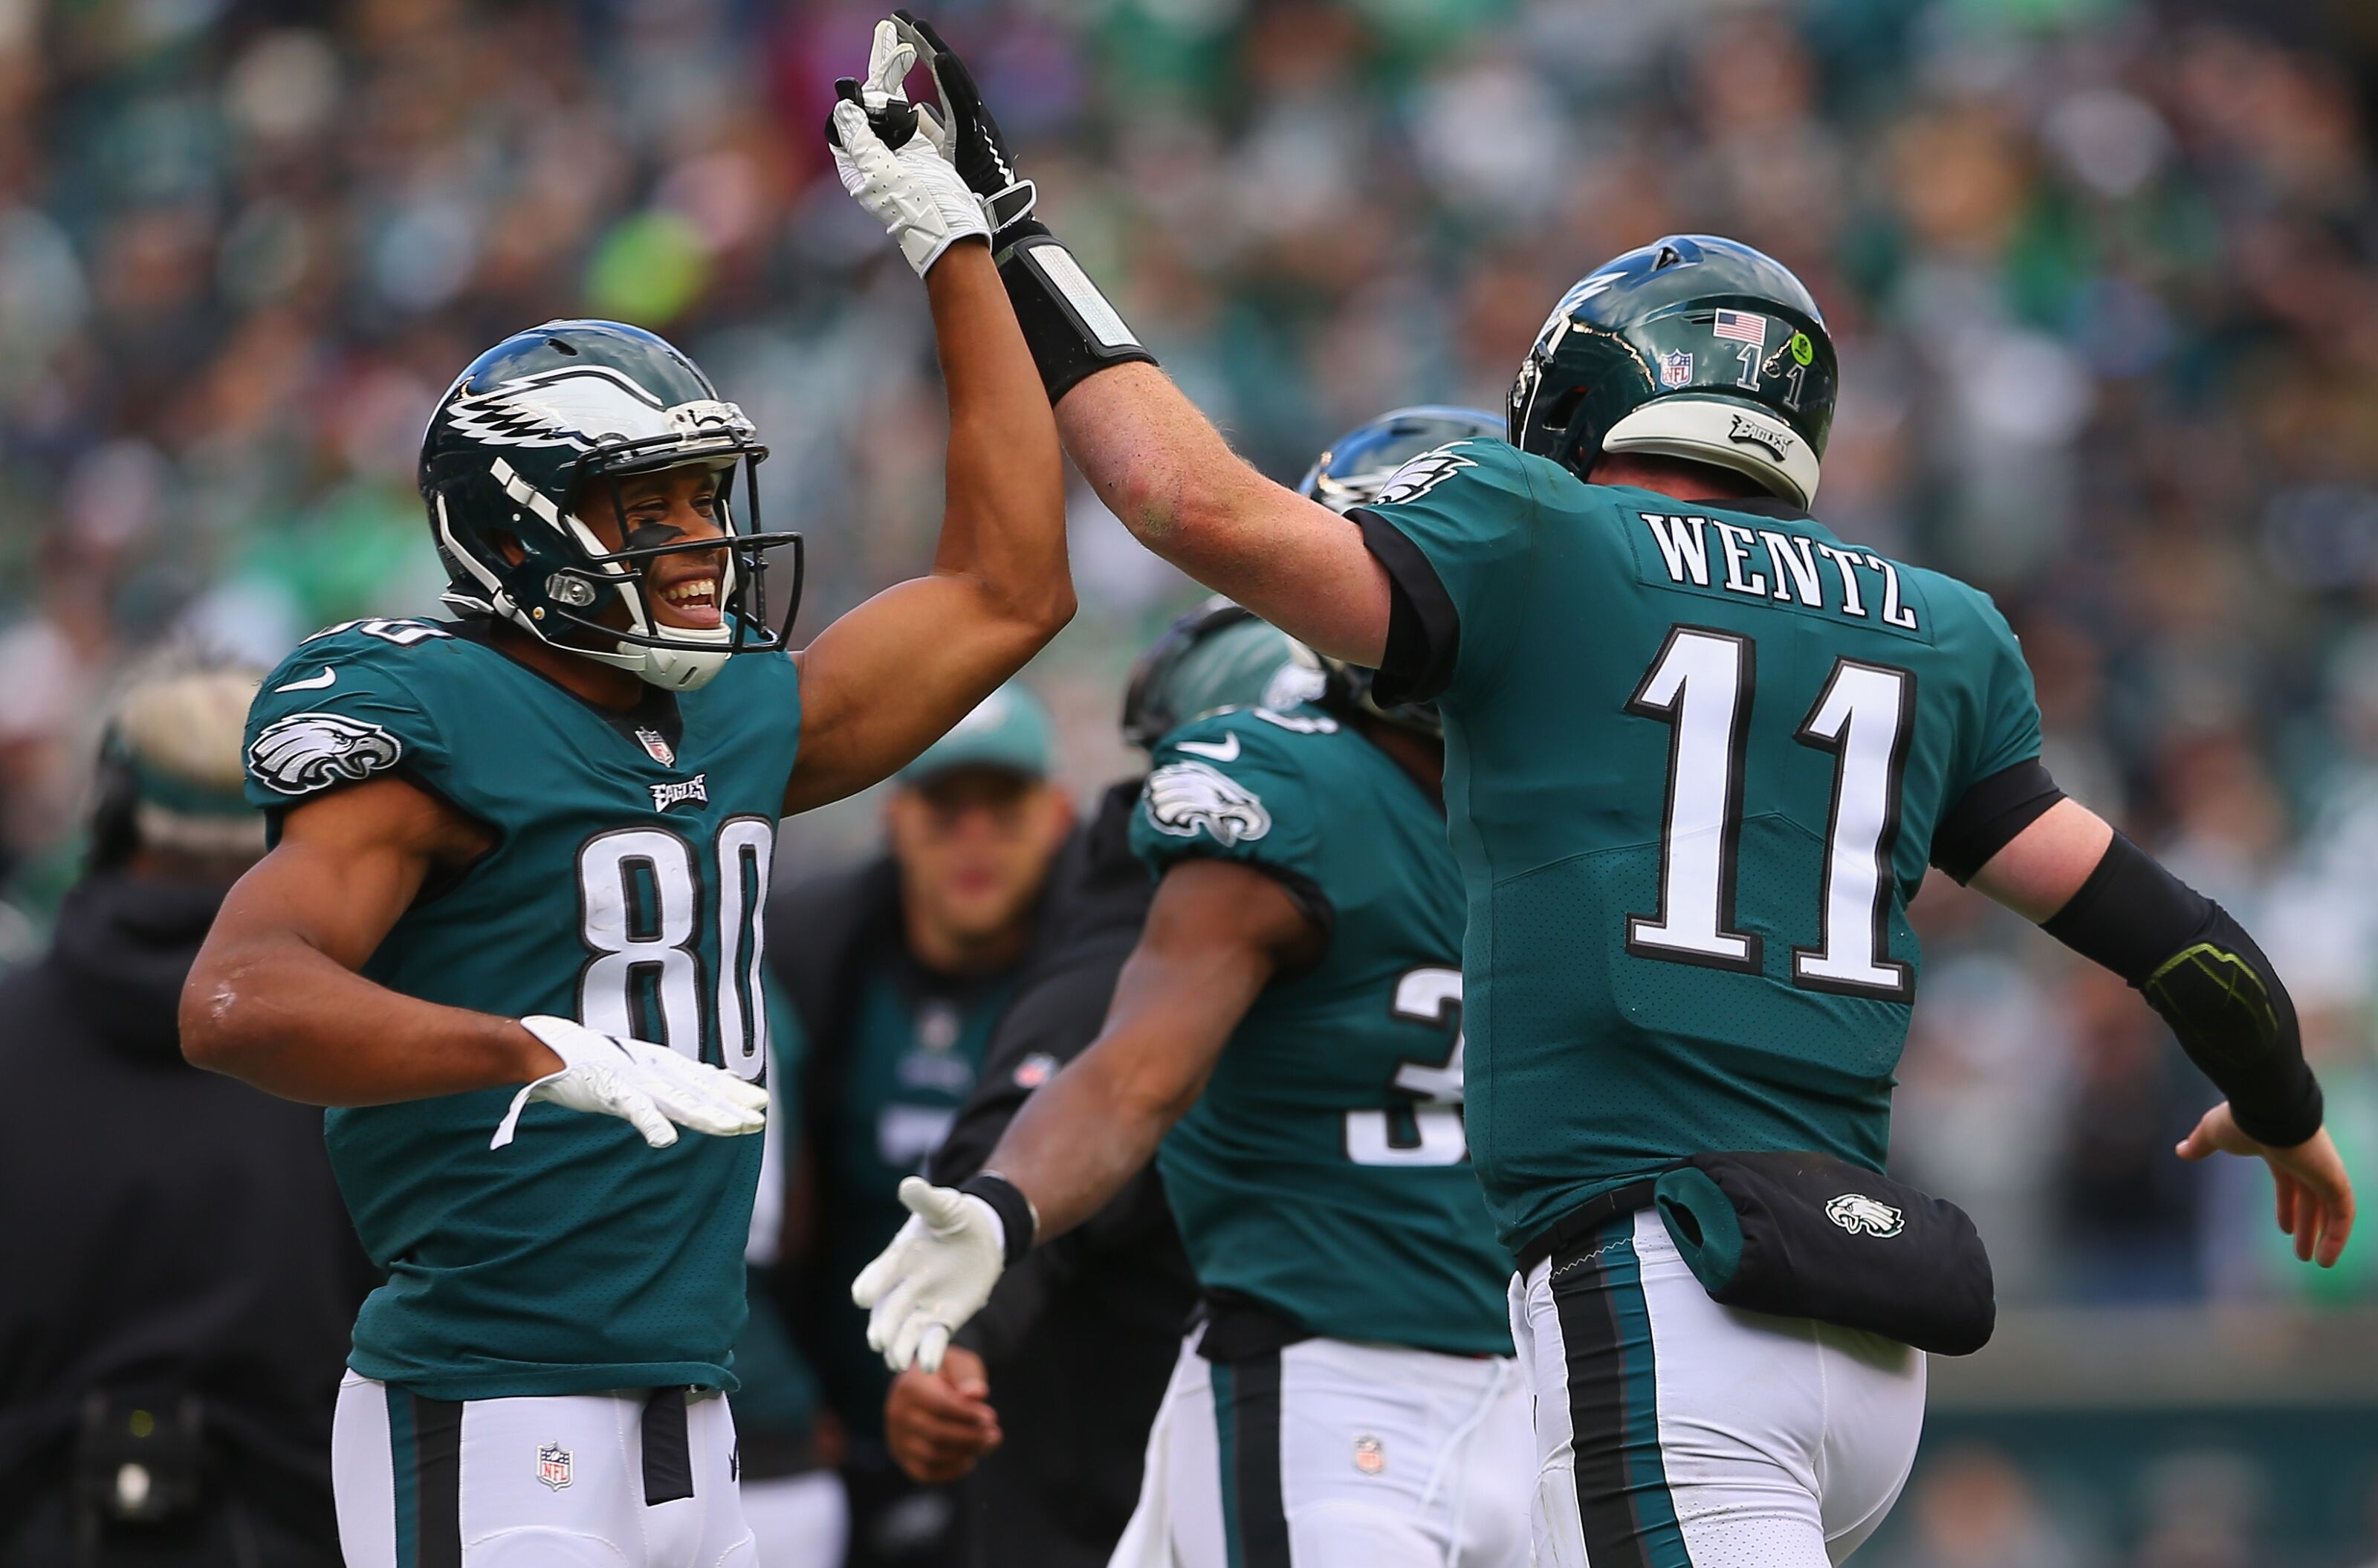 b4c56343c One reliable source still believes Philadelphia Eagles will win NFC East